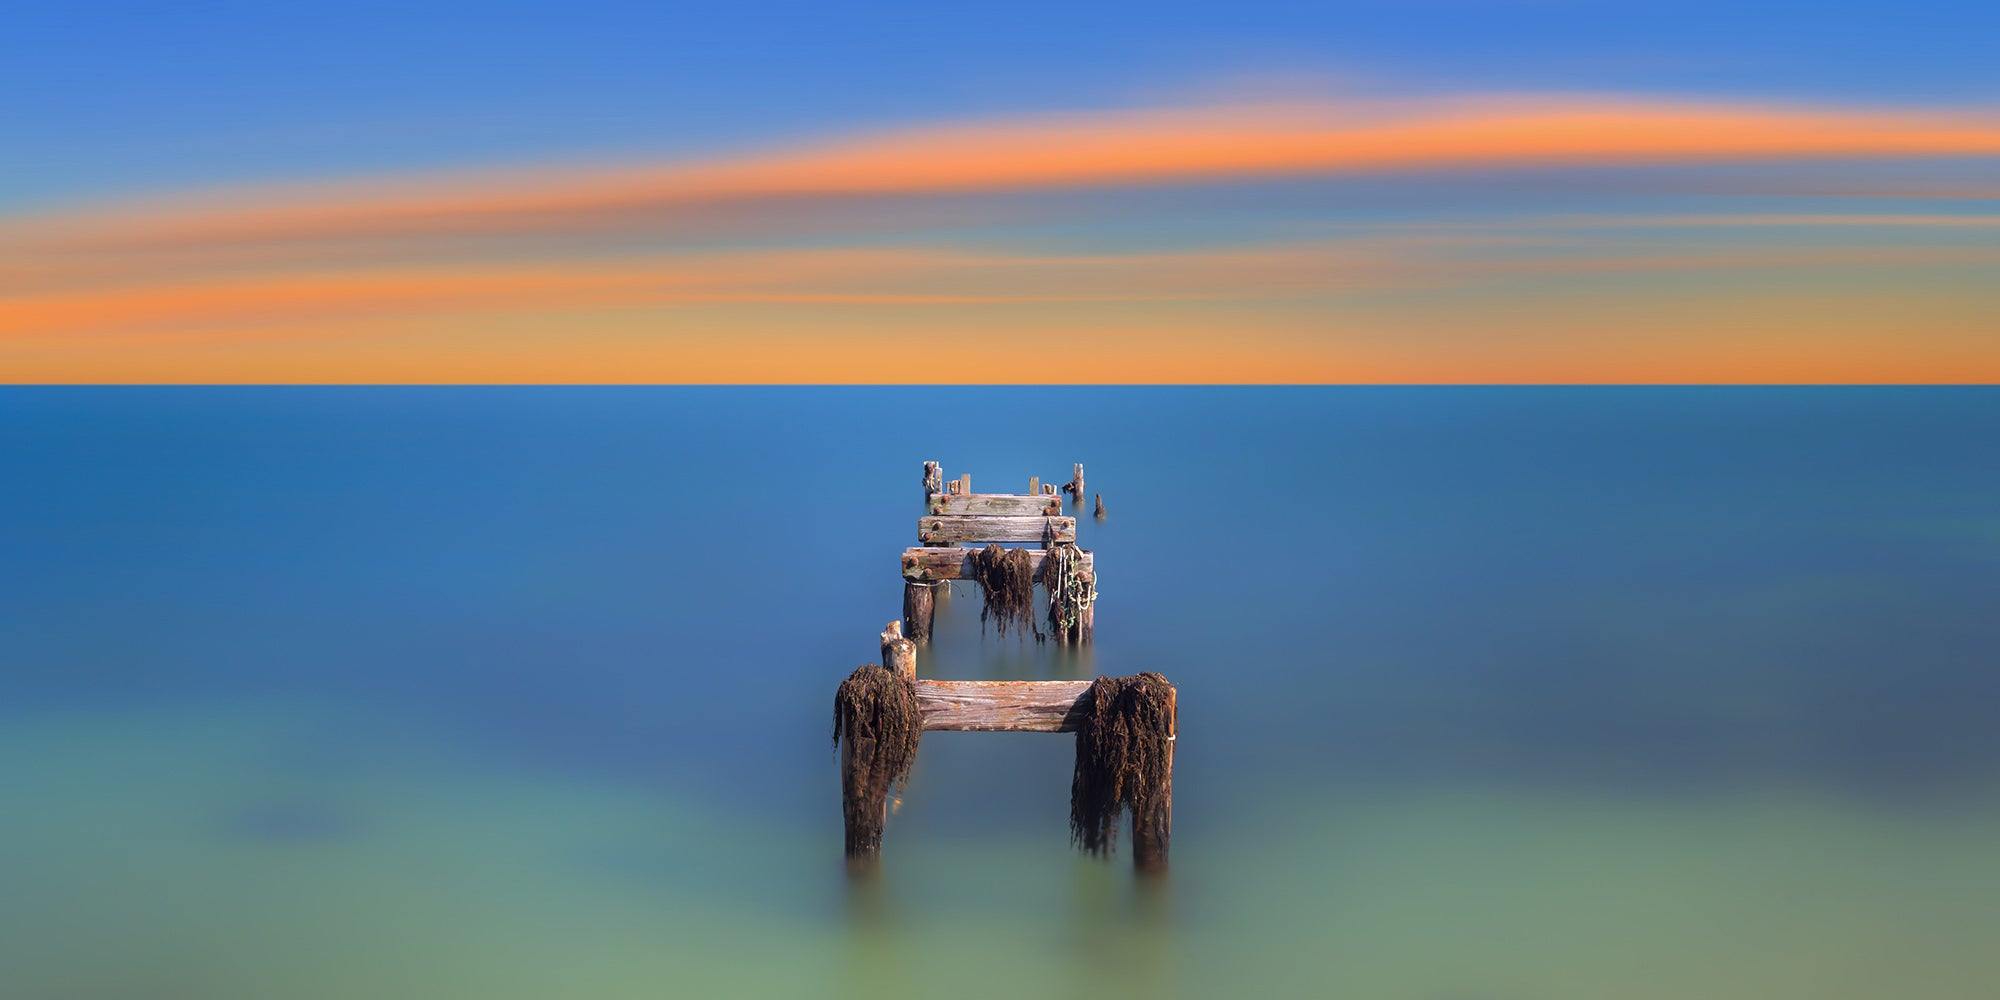 Landscape wall art photography of a decaying boat dock at sunset along a Cape Cod beach